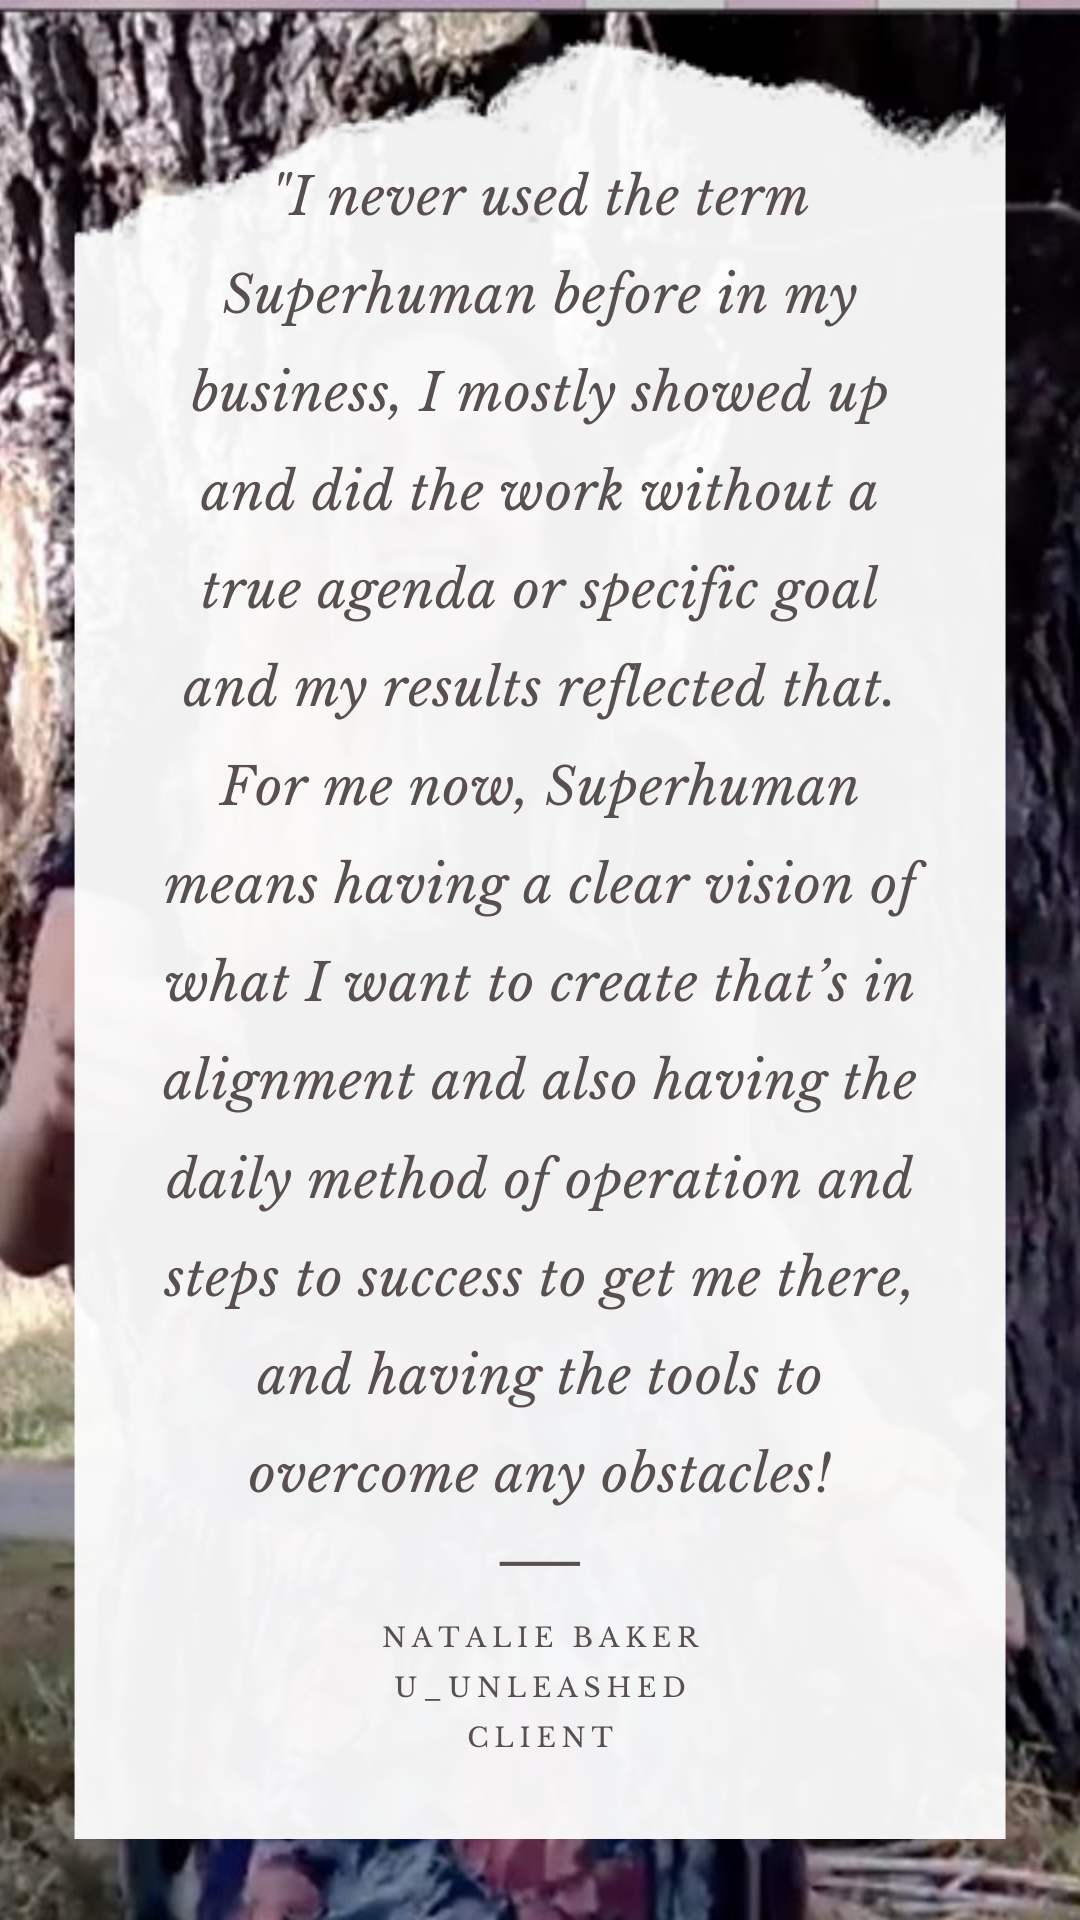 _I never used the term Superhuman before in my business, I mostly showed up and did the work without a true agenda or specific goal and my results reflected that.For me now, Superhuman means having a clear visi (1)